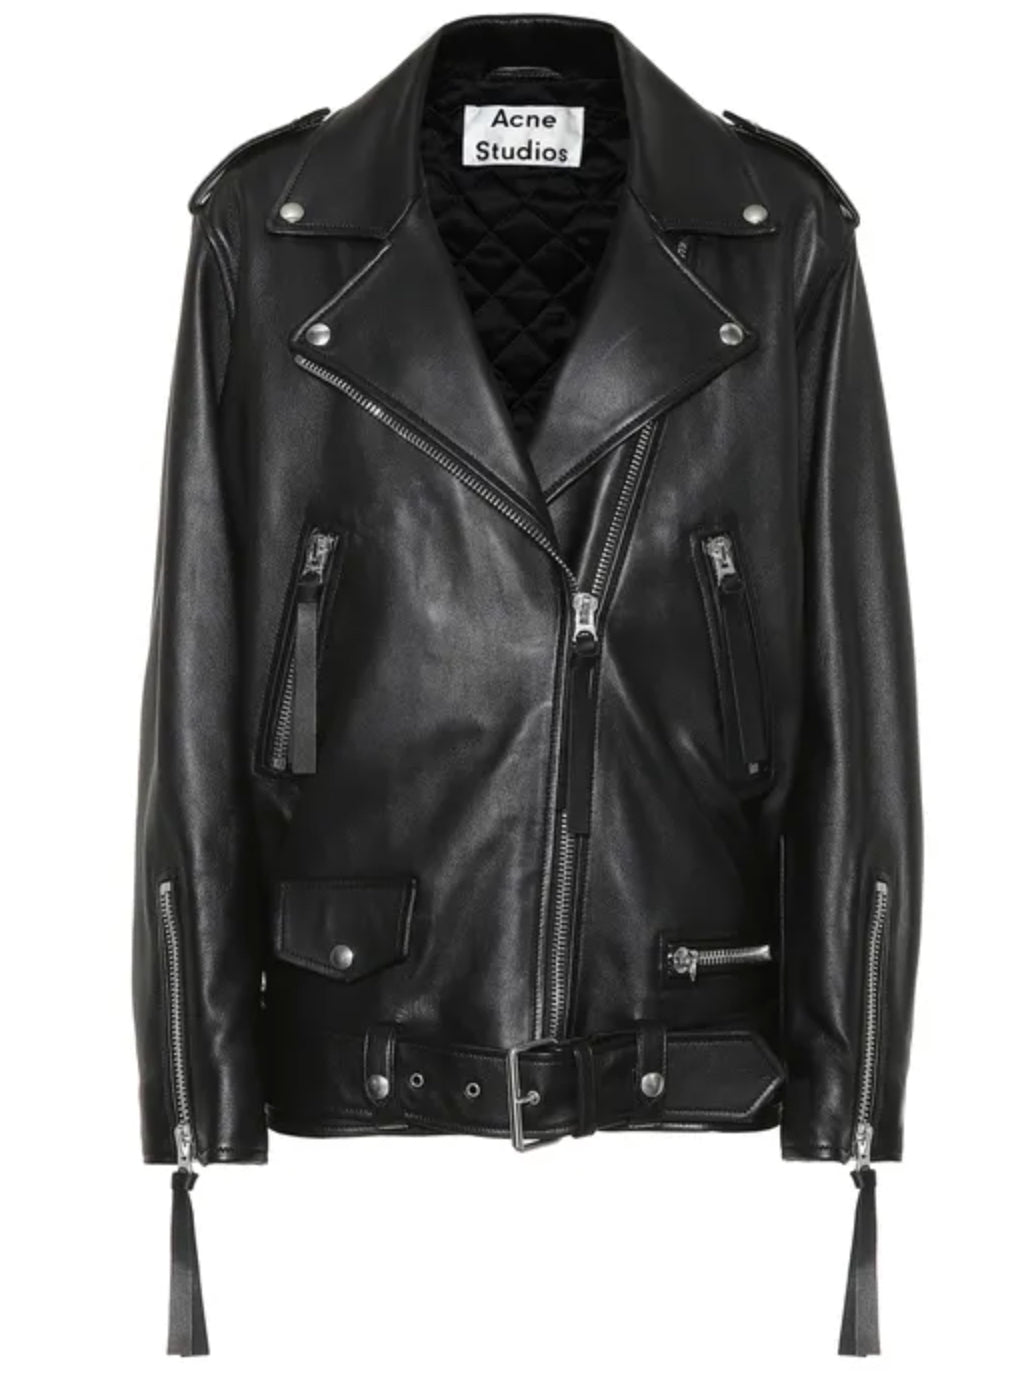 New Myrtle Leather Biker Jacket - Black